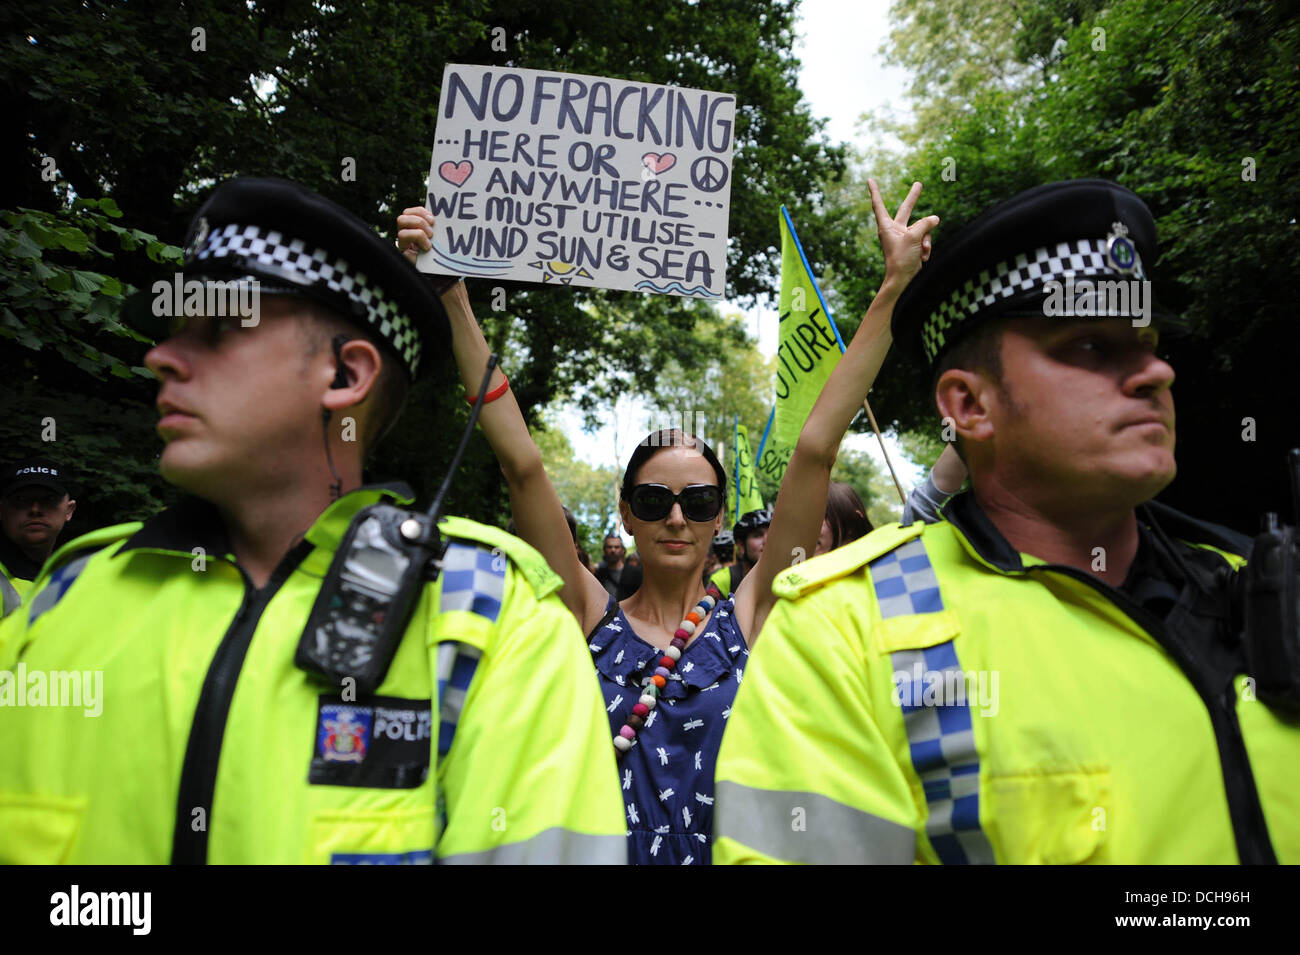 Balcombe, West Sussex, UK. 18th August 2013.  A young woman holds up a poster behind police line as thousands of protesters converged on Balcombe in West Sussex today to march and protest against the Cuadrilla fracking site in the village .  Photograph taken by Simon Dack/Alamy Live News Stock Photo